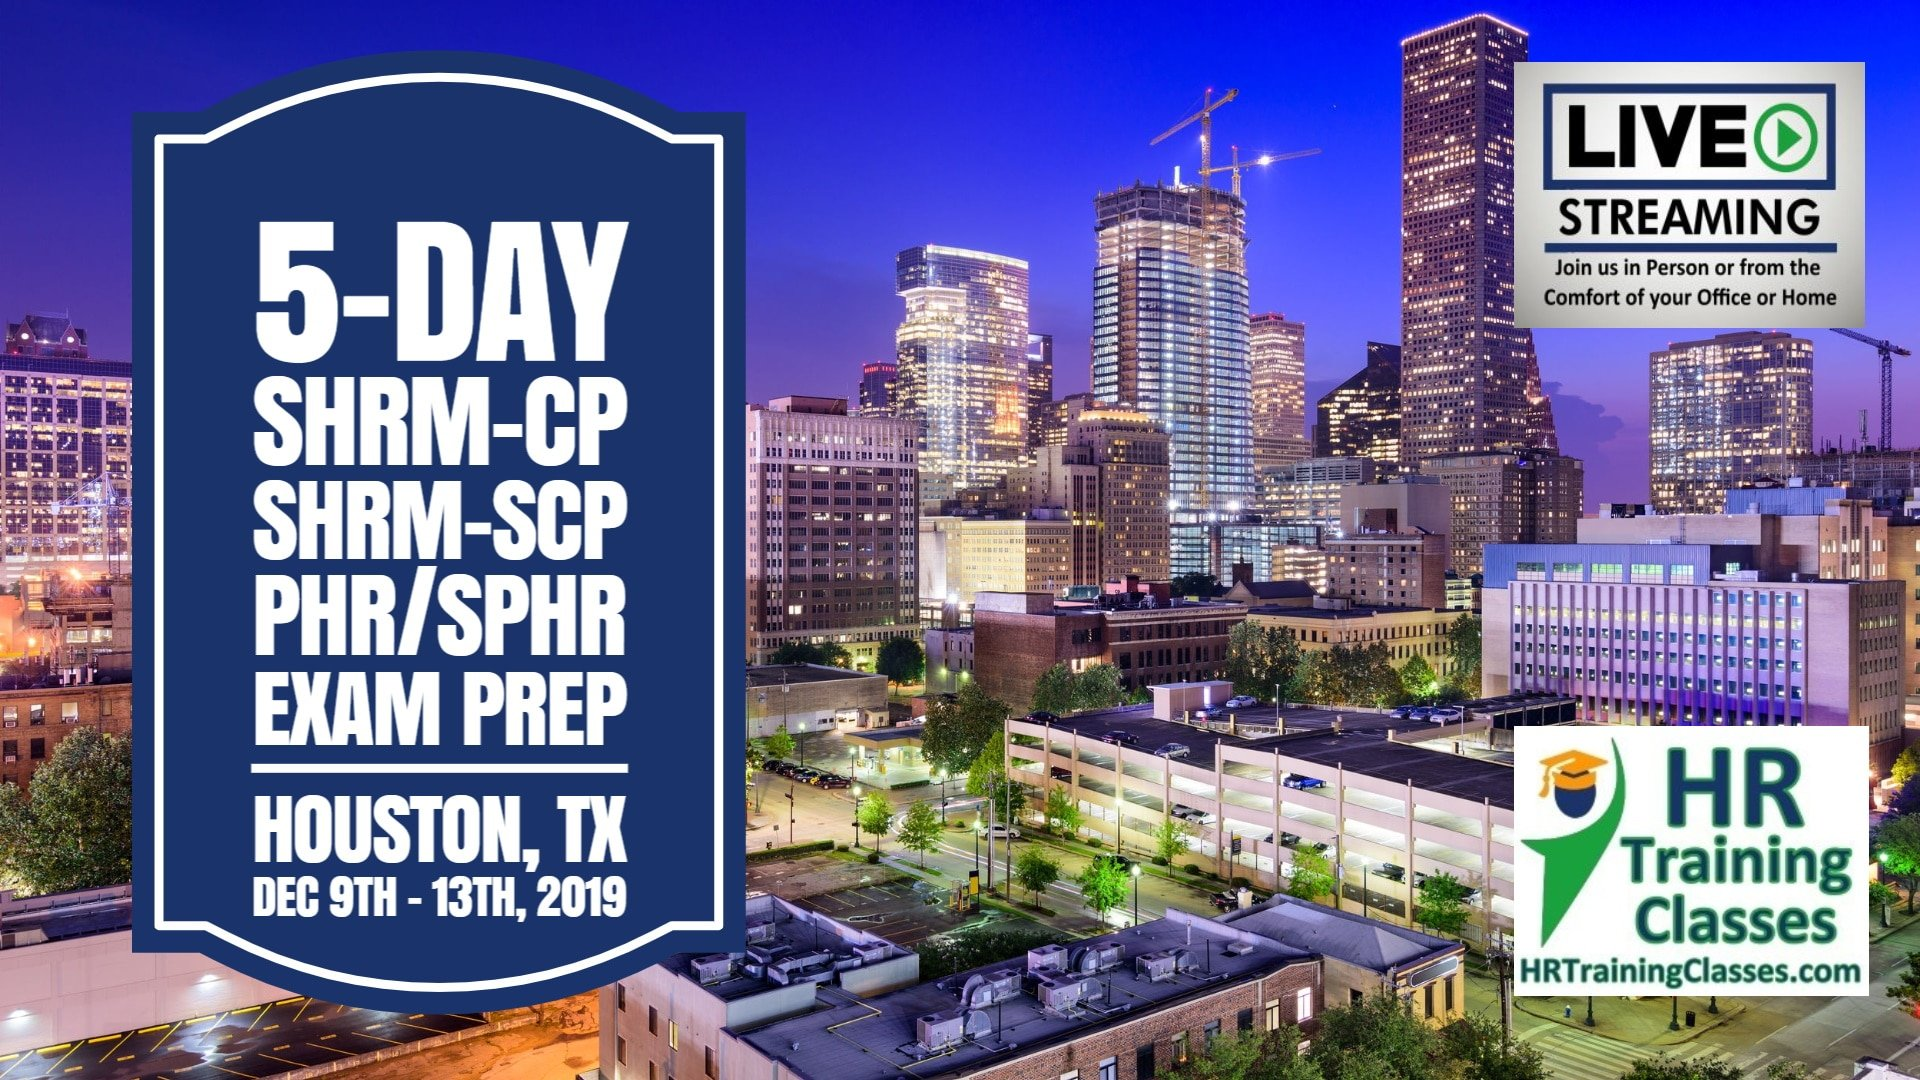 5 Day SHRM-CP, SHRM-SCP, PHR, SPHR Exam Prep Boot Camp in Houston, TX (Starts 12-9-2019)